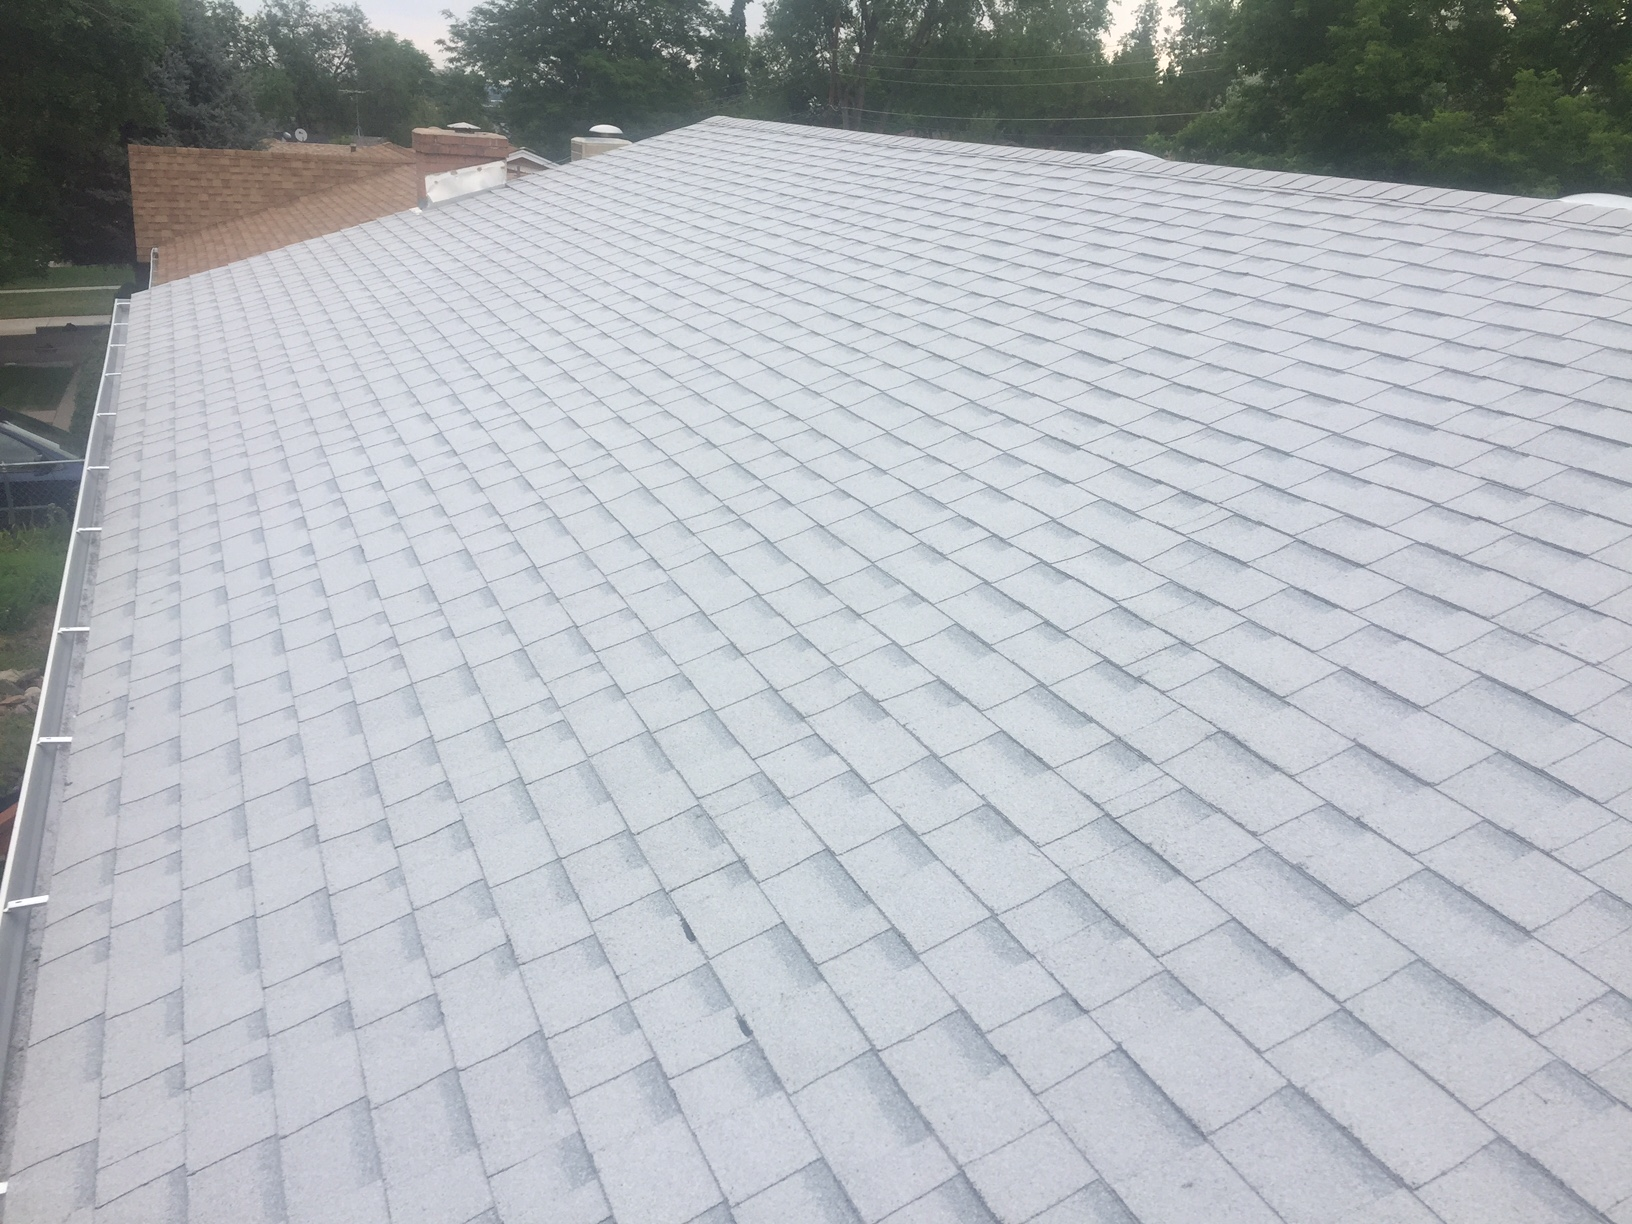 New House Roof With Oakridge Shasta White Shingles In